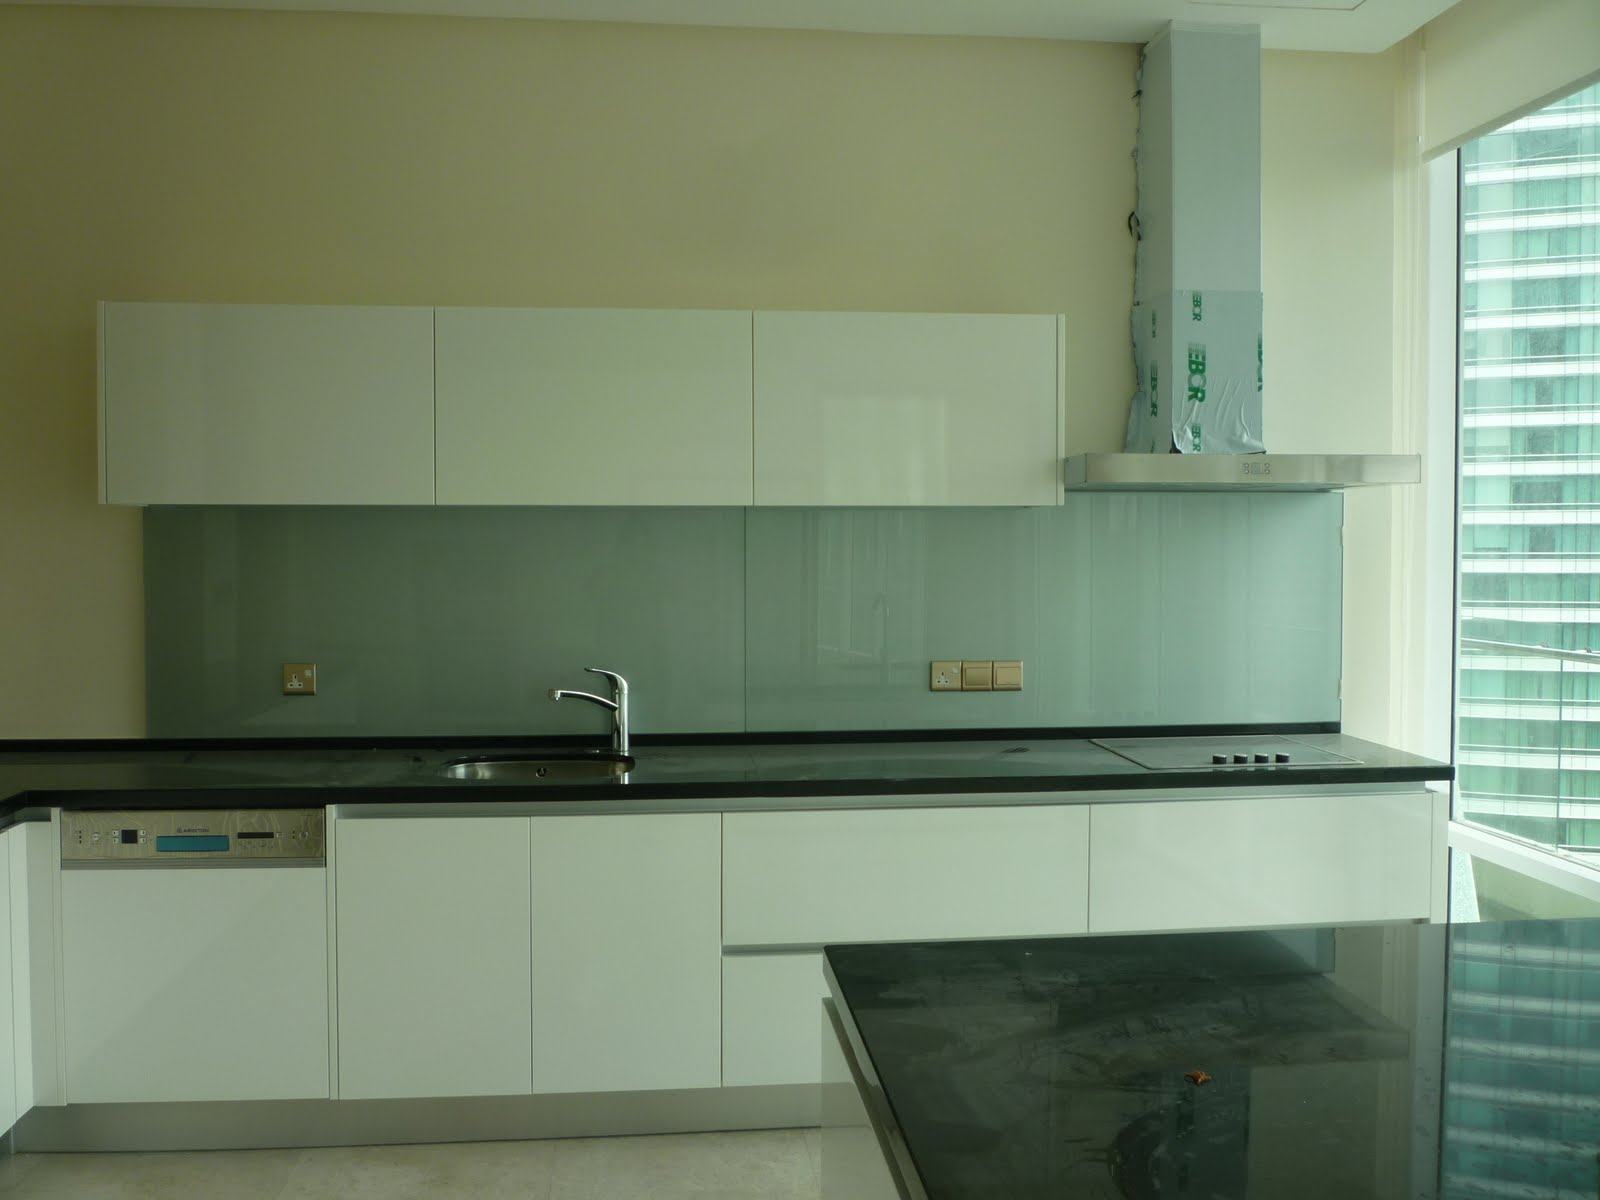 Nova kitchen deco sdn bhd kitchen cabinet in spray paint for Spray painting kitchen cabinets